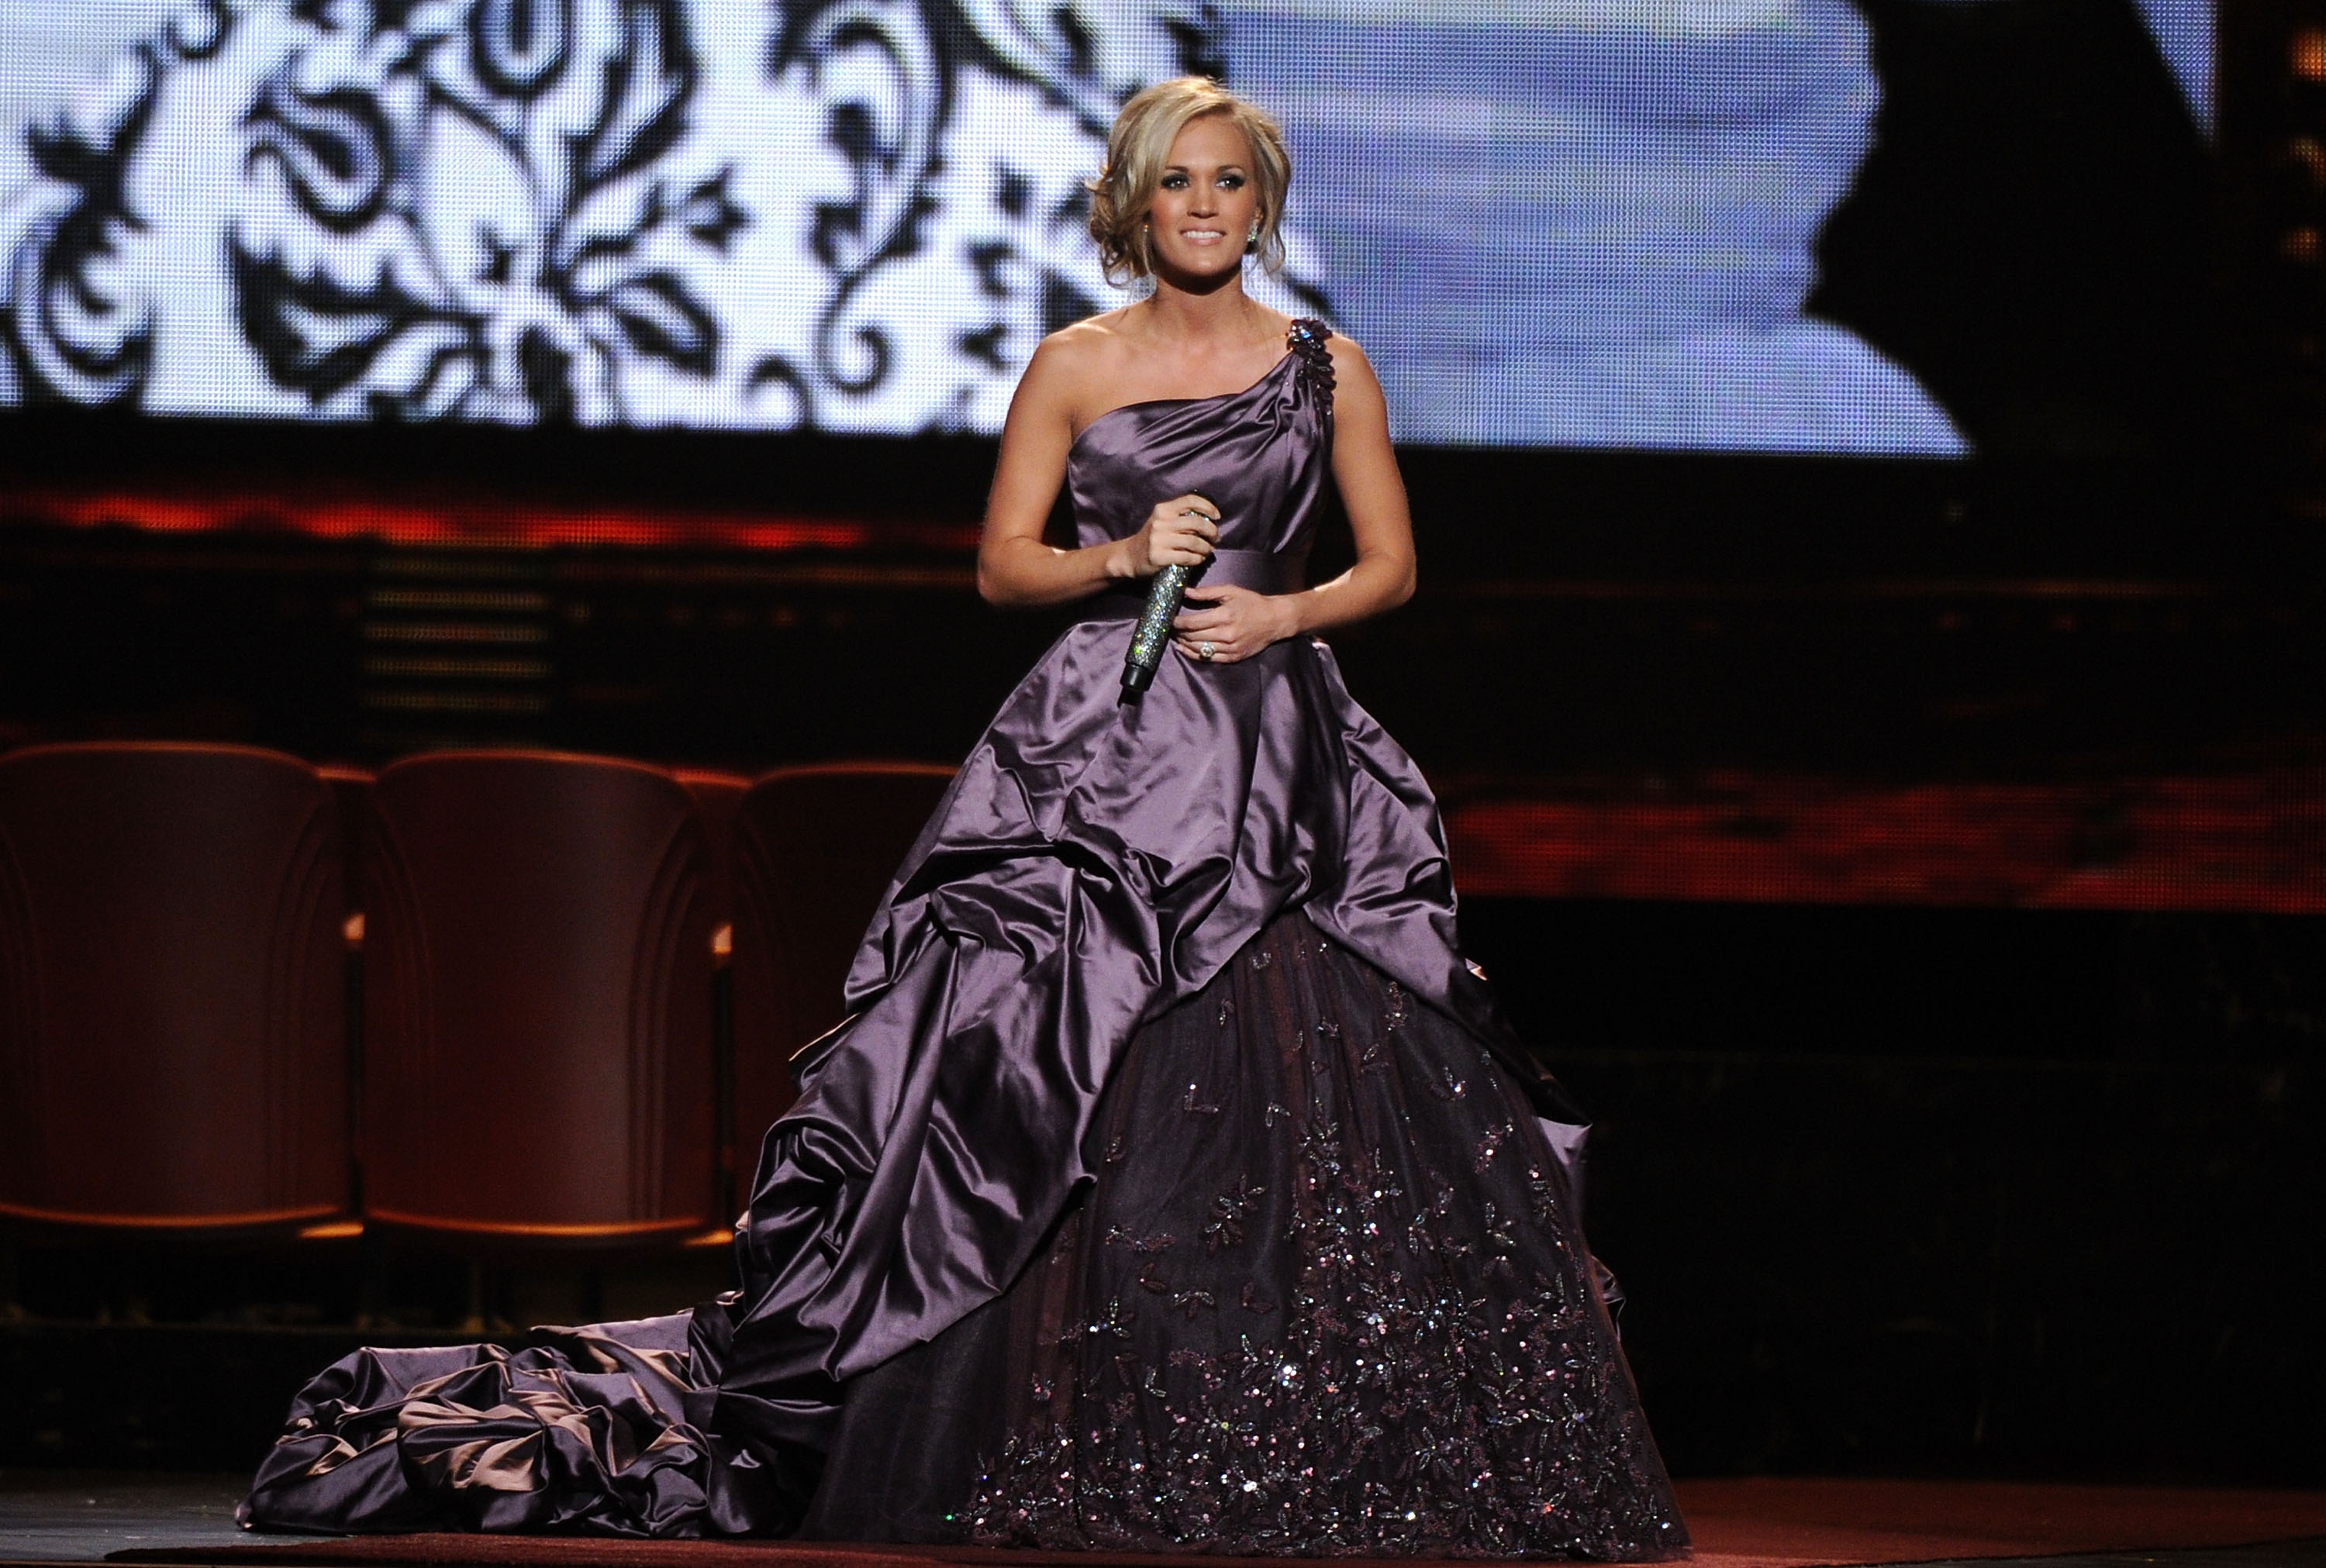 Carrie Underwood at the 44th Annual CMA Awards on November 10, 2010; Photo by Bryan Bedder/WireImage